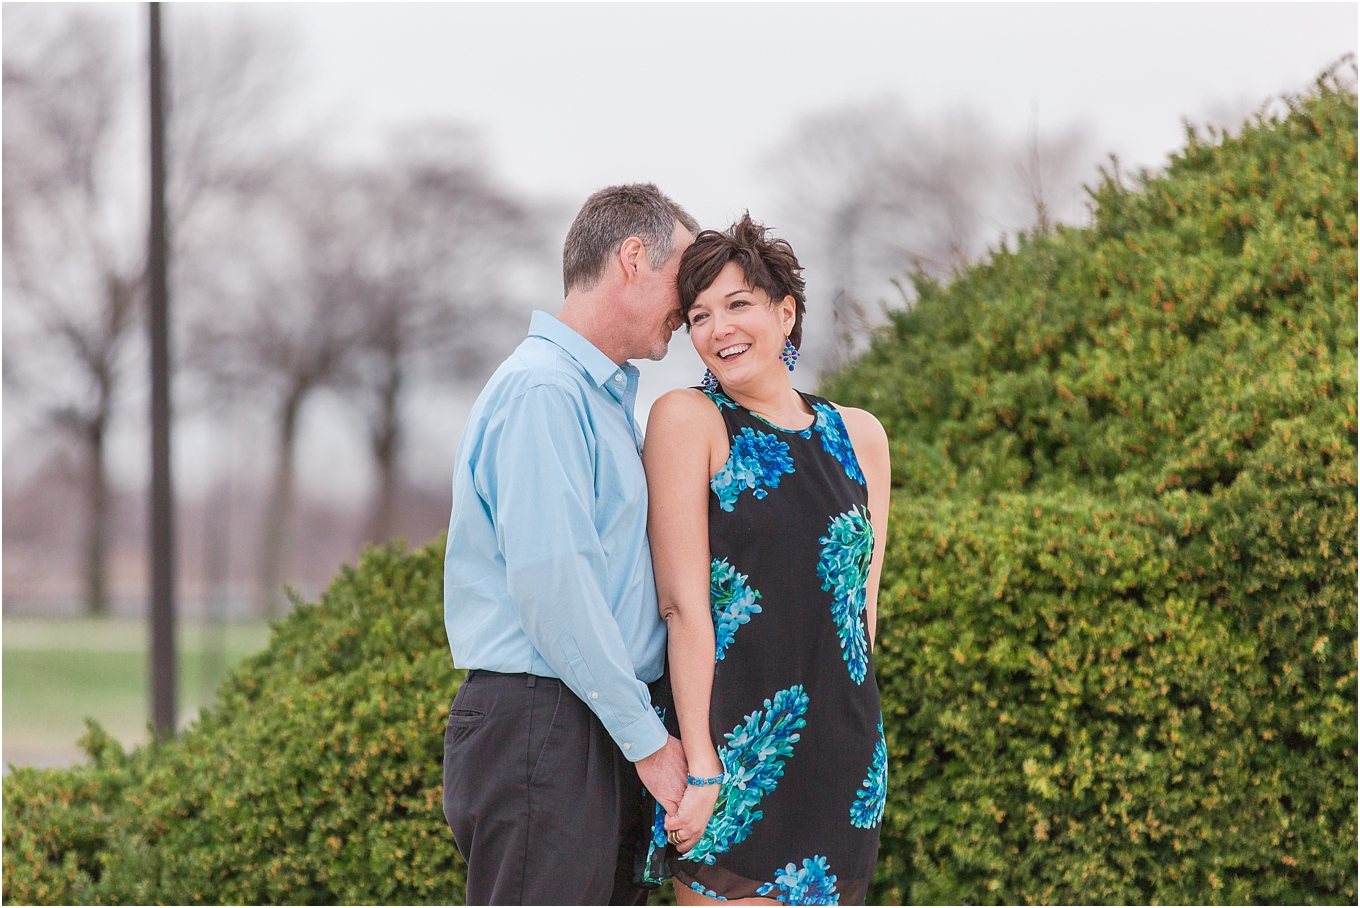 downtown-detroit-engagement-photos-on-belle-isle-by-courtney-carolyn-photography_0020.jpg